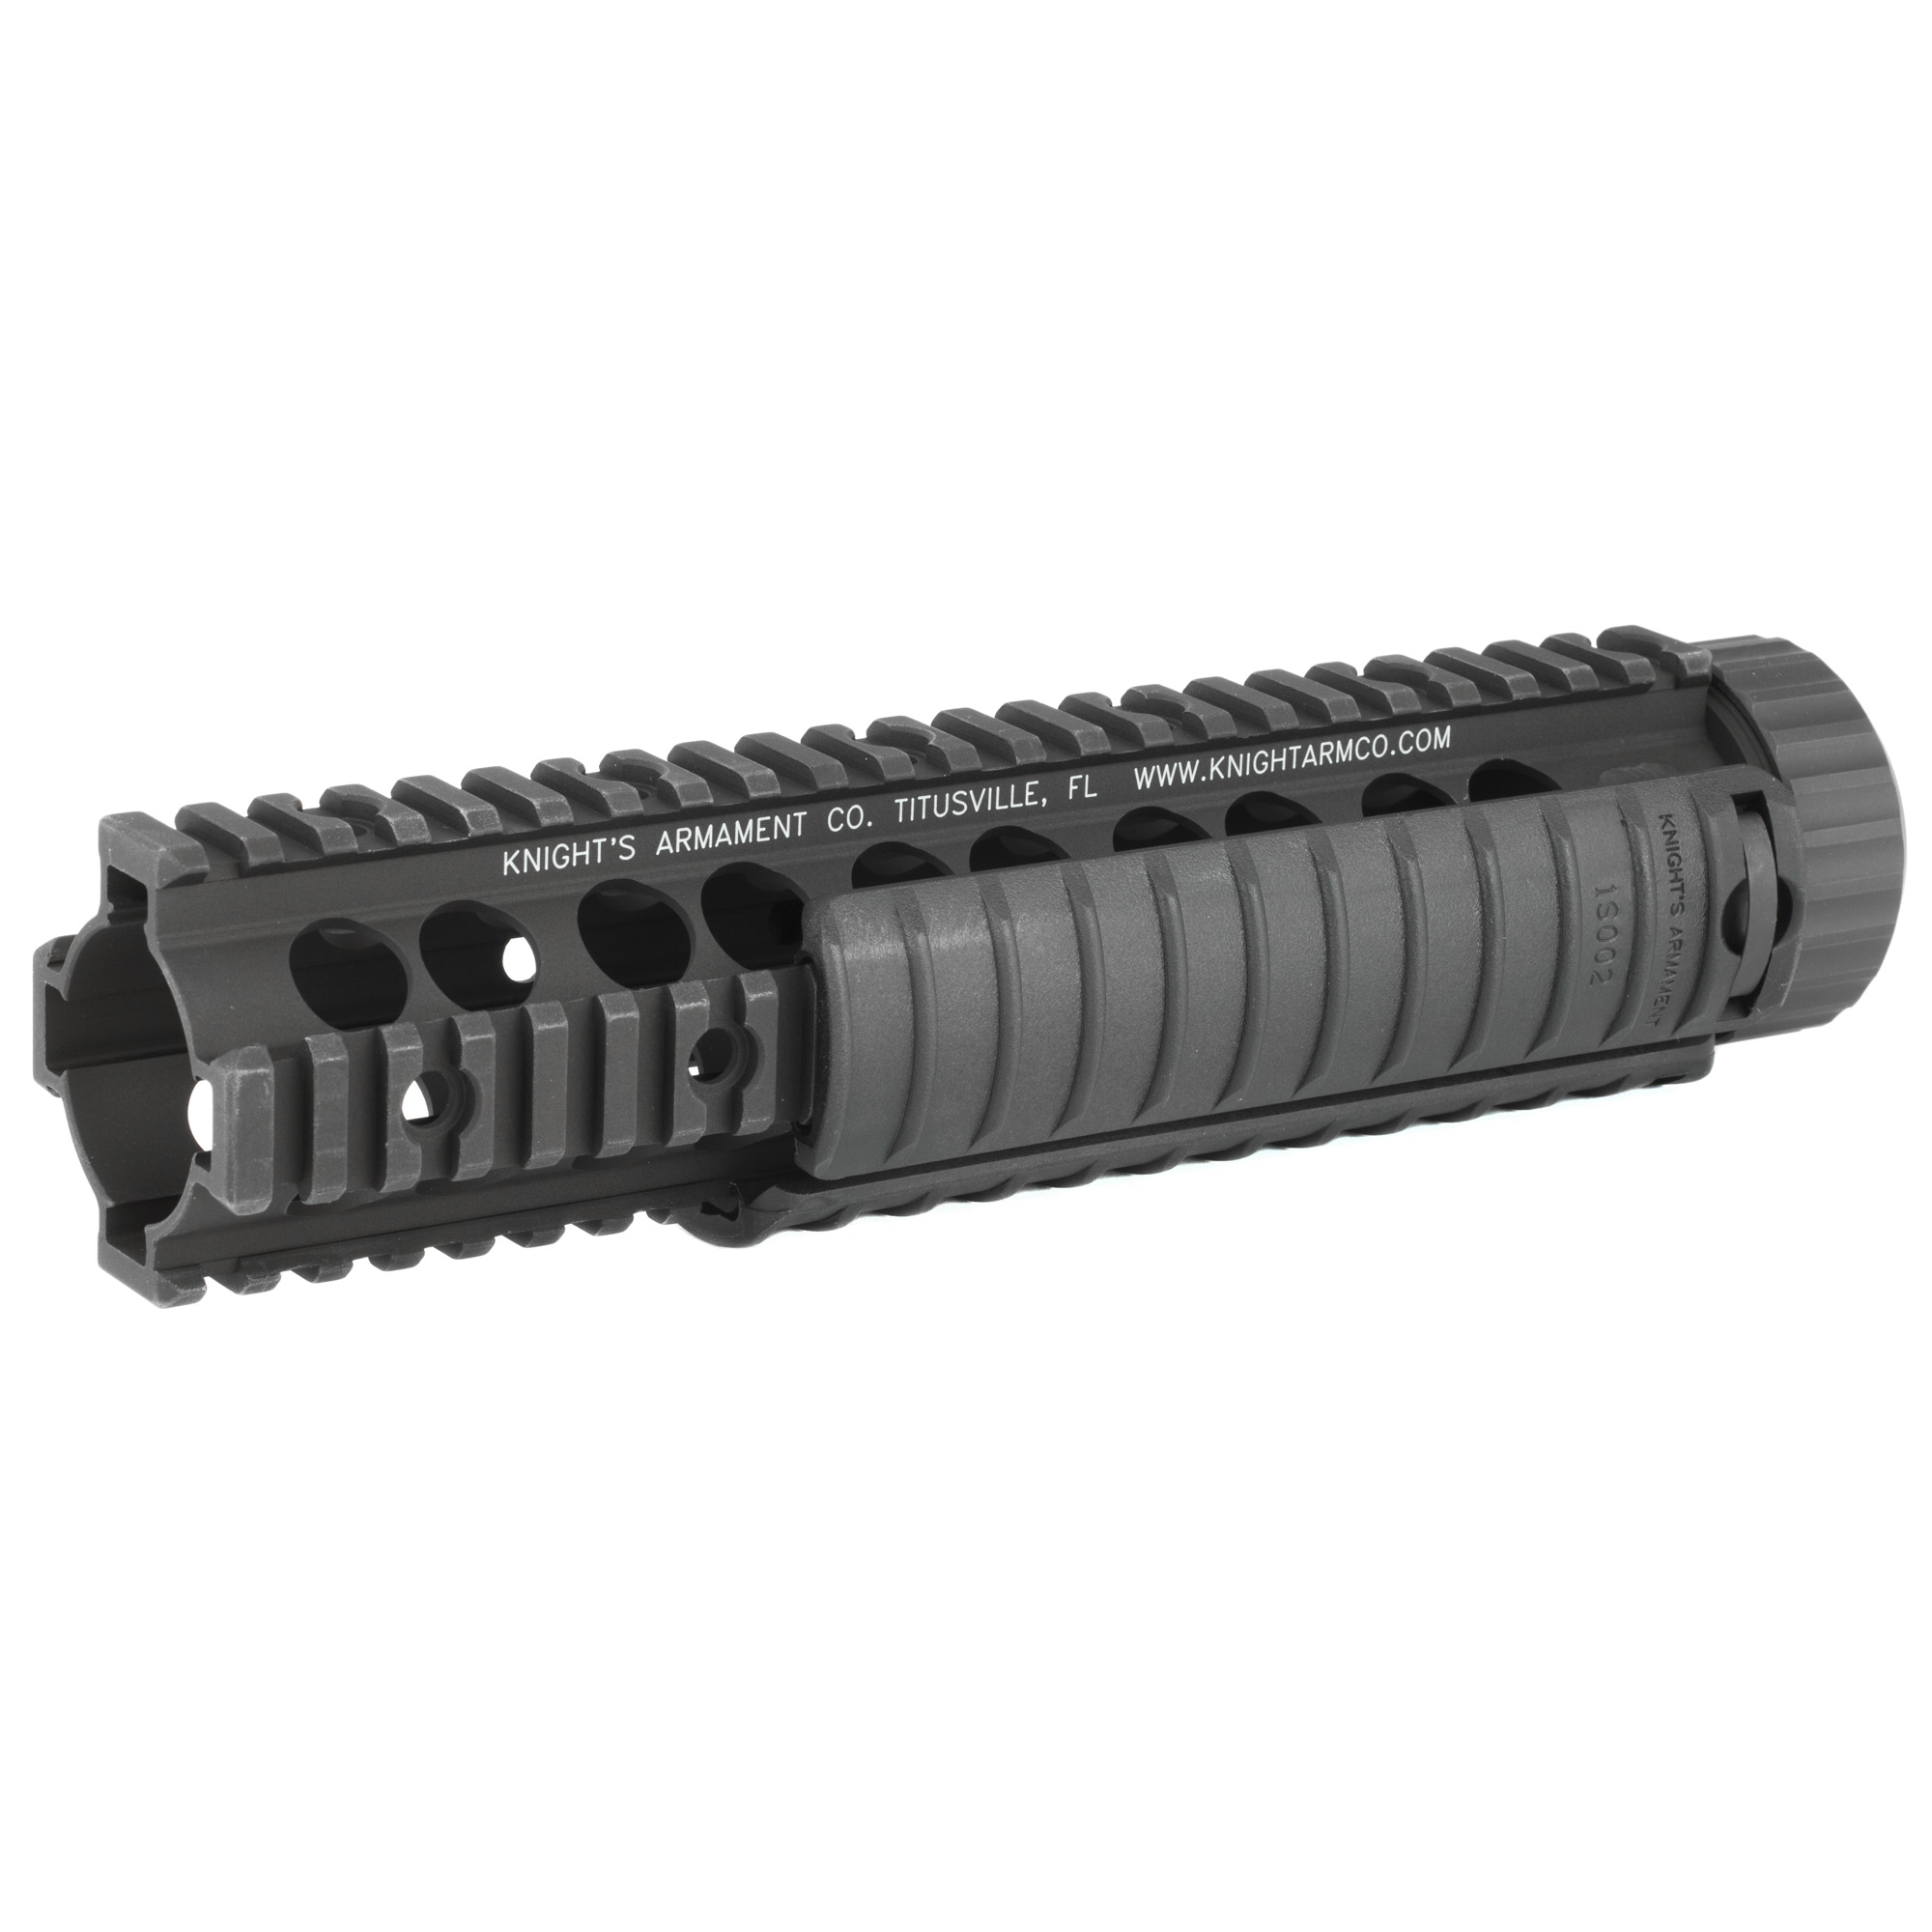 """Knights Armament Co.'s Mid-Length Free Float RAS Forend Assembly features full length mil-spec M1913 Picatinny rails making it compatible with any number of rail-mounted tactical accessories. The rail free floats the barrel"""" allowing for consistent barrel harmonics upon firing"""" and thus increased accuracy potential. Includes three KAC 11 Rib Rail Panels. This Free Float RAS requires that the rifle have a carbine or mid length gas system and a low profile gas block. Disassembly of the rifle's gas system and removal of the factory barrel nut will be necessary. This forend uses a proprietary barrel nut that may be installed using a standard AR-15 armorer's barrel nut wrench (sold separately). For AR-15/SR-15 based platforms only; not compatible with SR-25 variants. Installation instructions are included."""